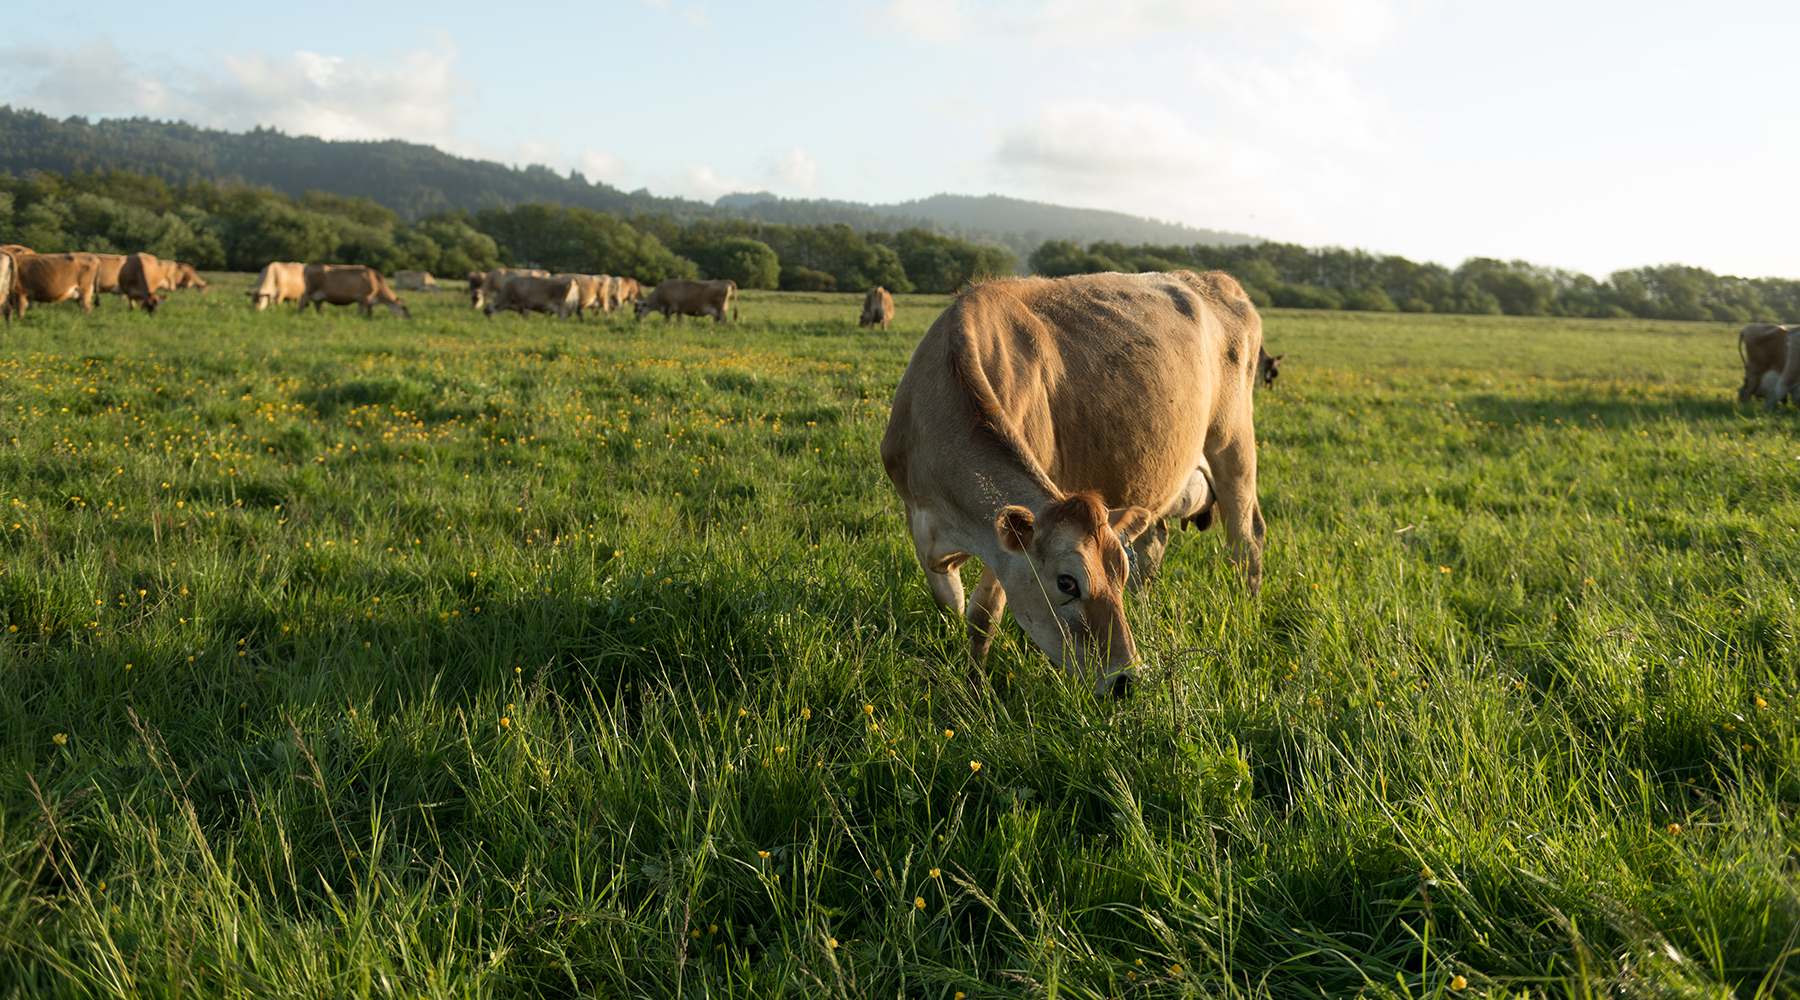 Cow grazing in lush pasture.